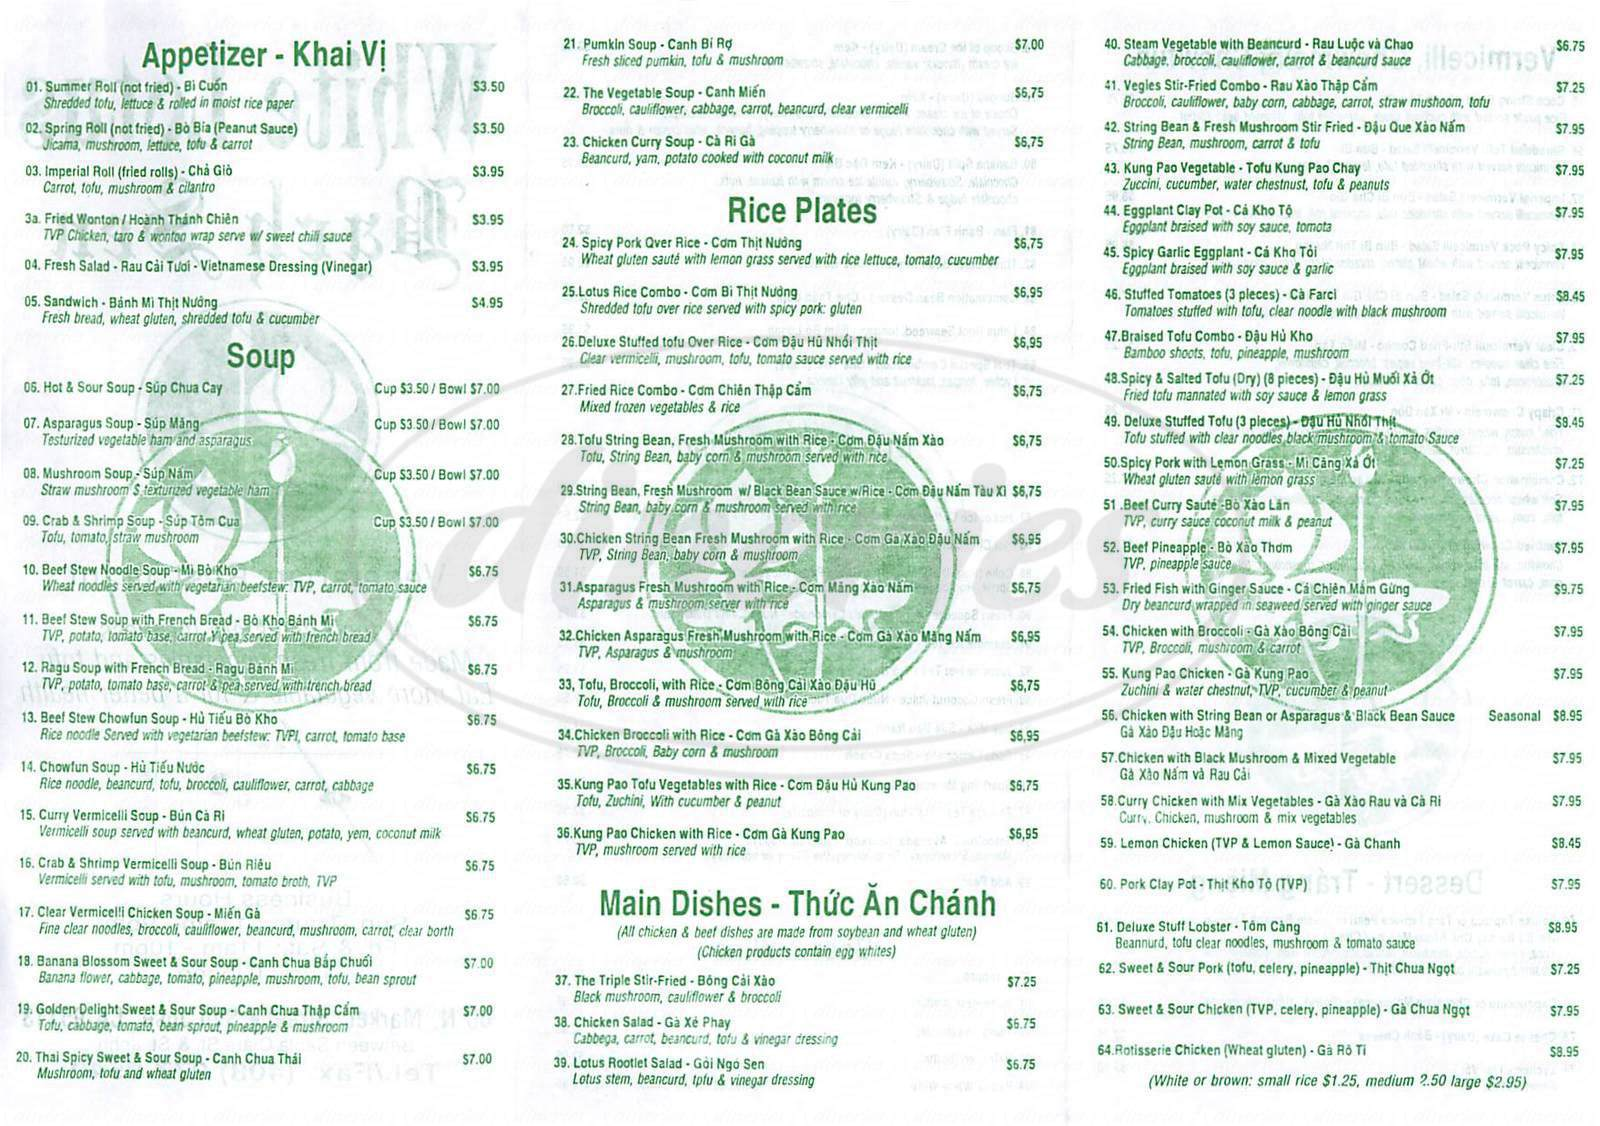 menu for White Lotus Vegetarian Restaurant